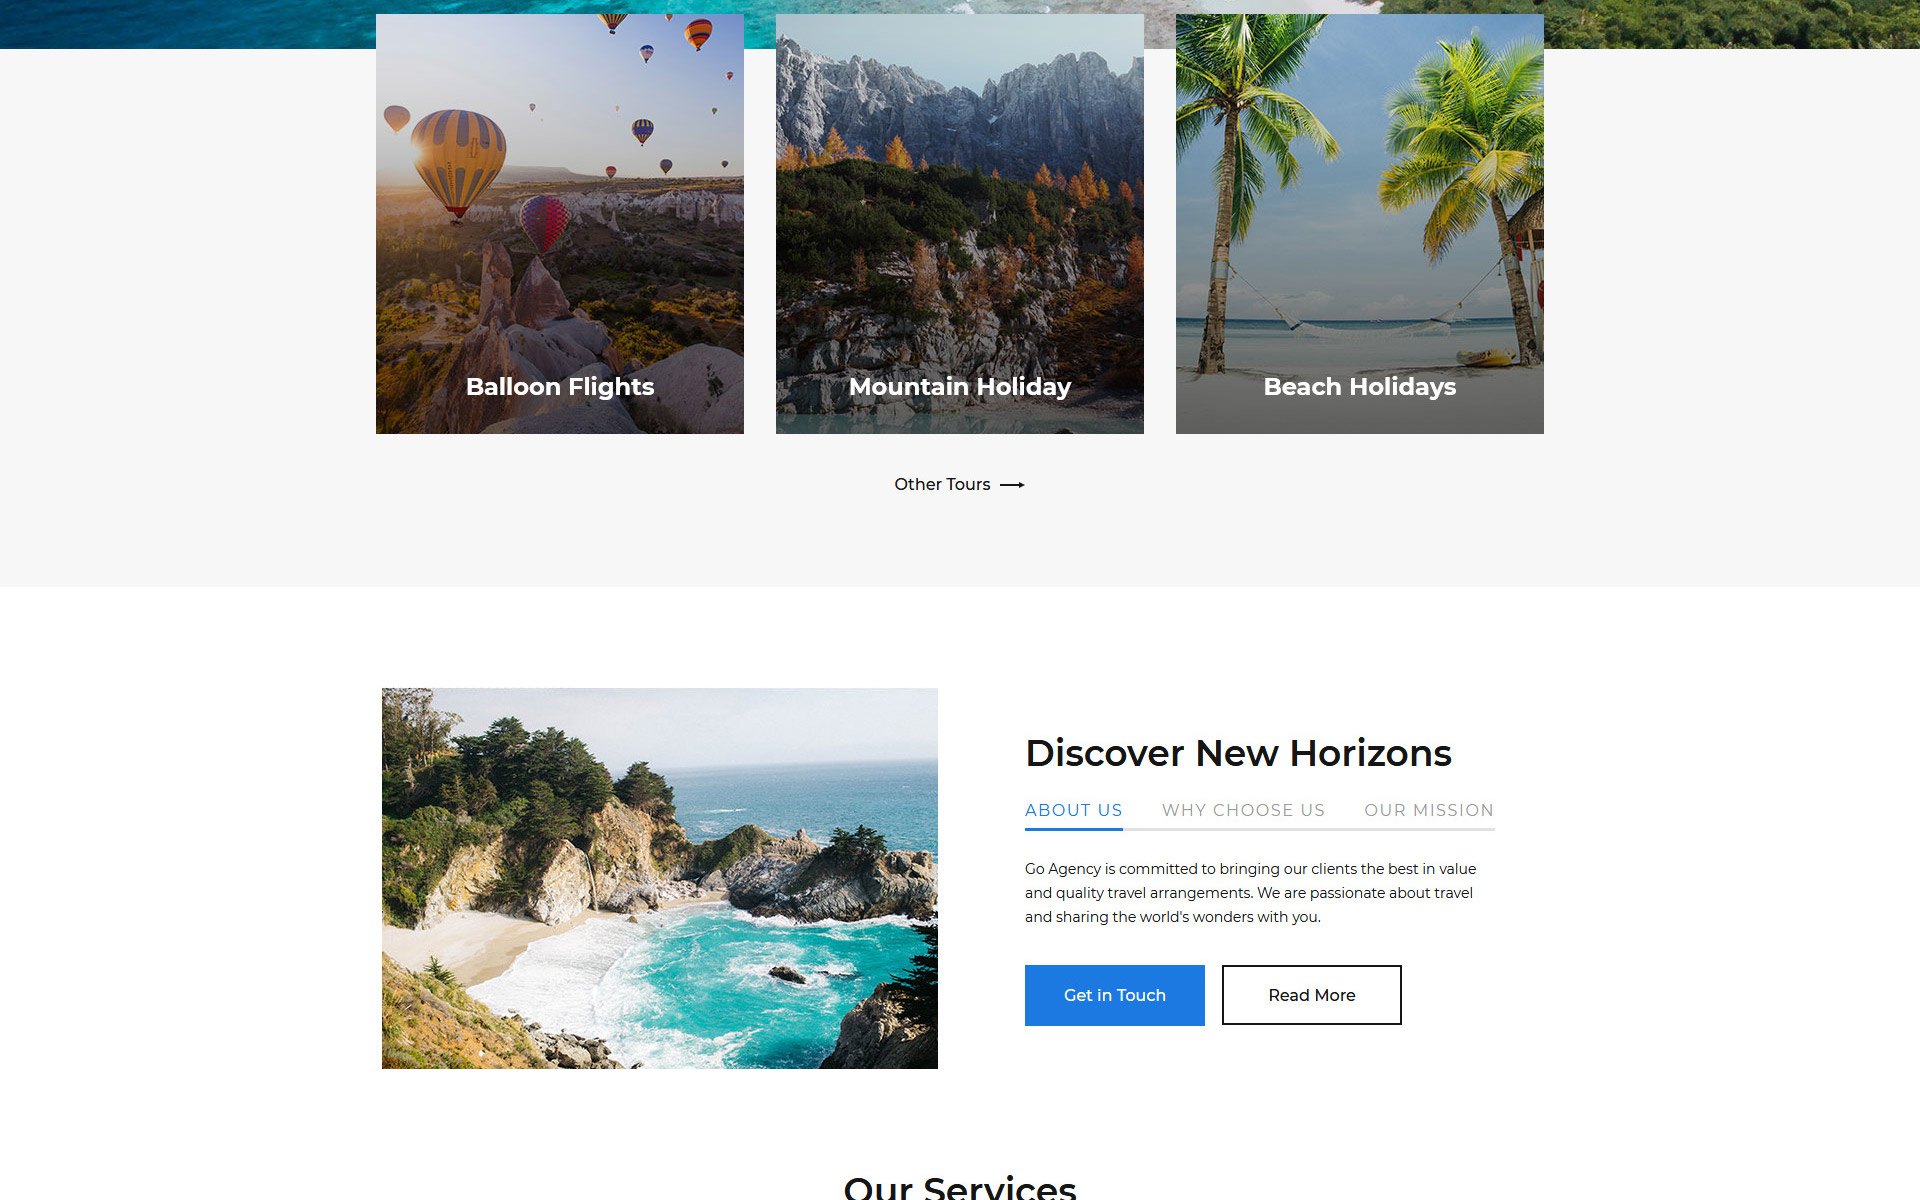 Go Agency - Travel Agency Clean Bootstrap HTML Landing Page Template